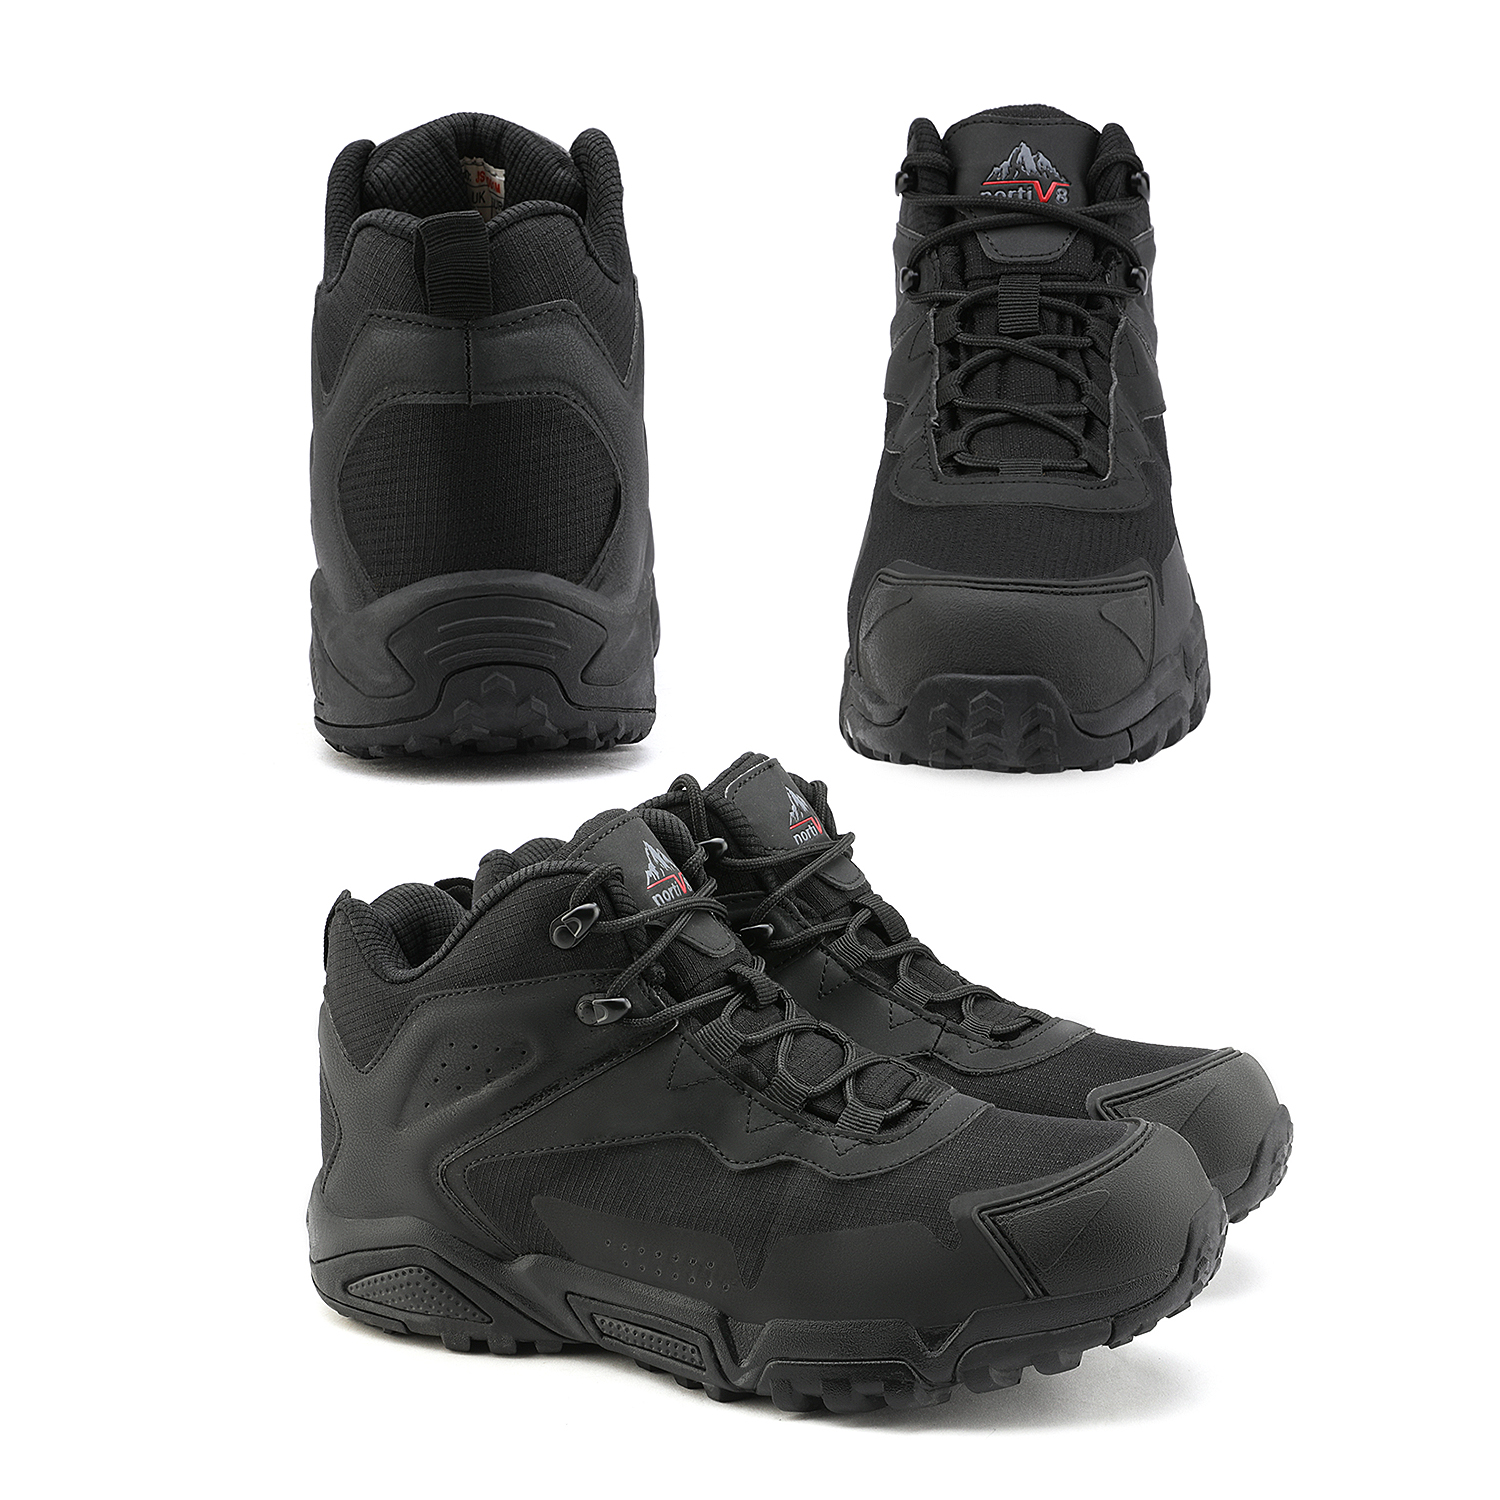 NORTIV-8-Men-039-s-Ankle-Waterproof-Hiking-Boots-Lightweight-Backpacking-Work-Shoes thumbnail 26